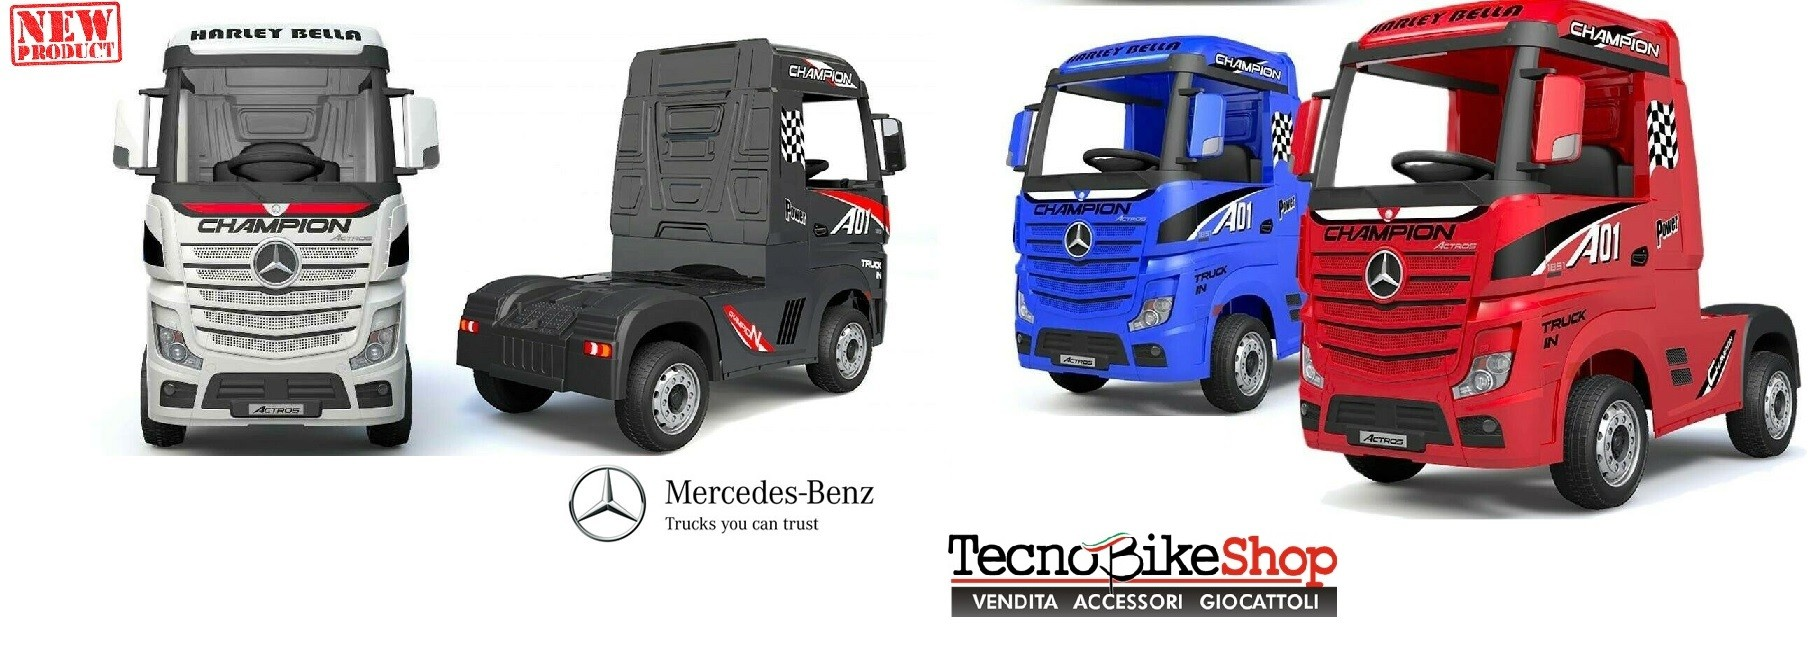 Camion Elettrico Per Bambini Truck MERCEDES ACTROS 12V